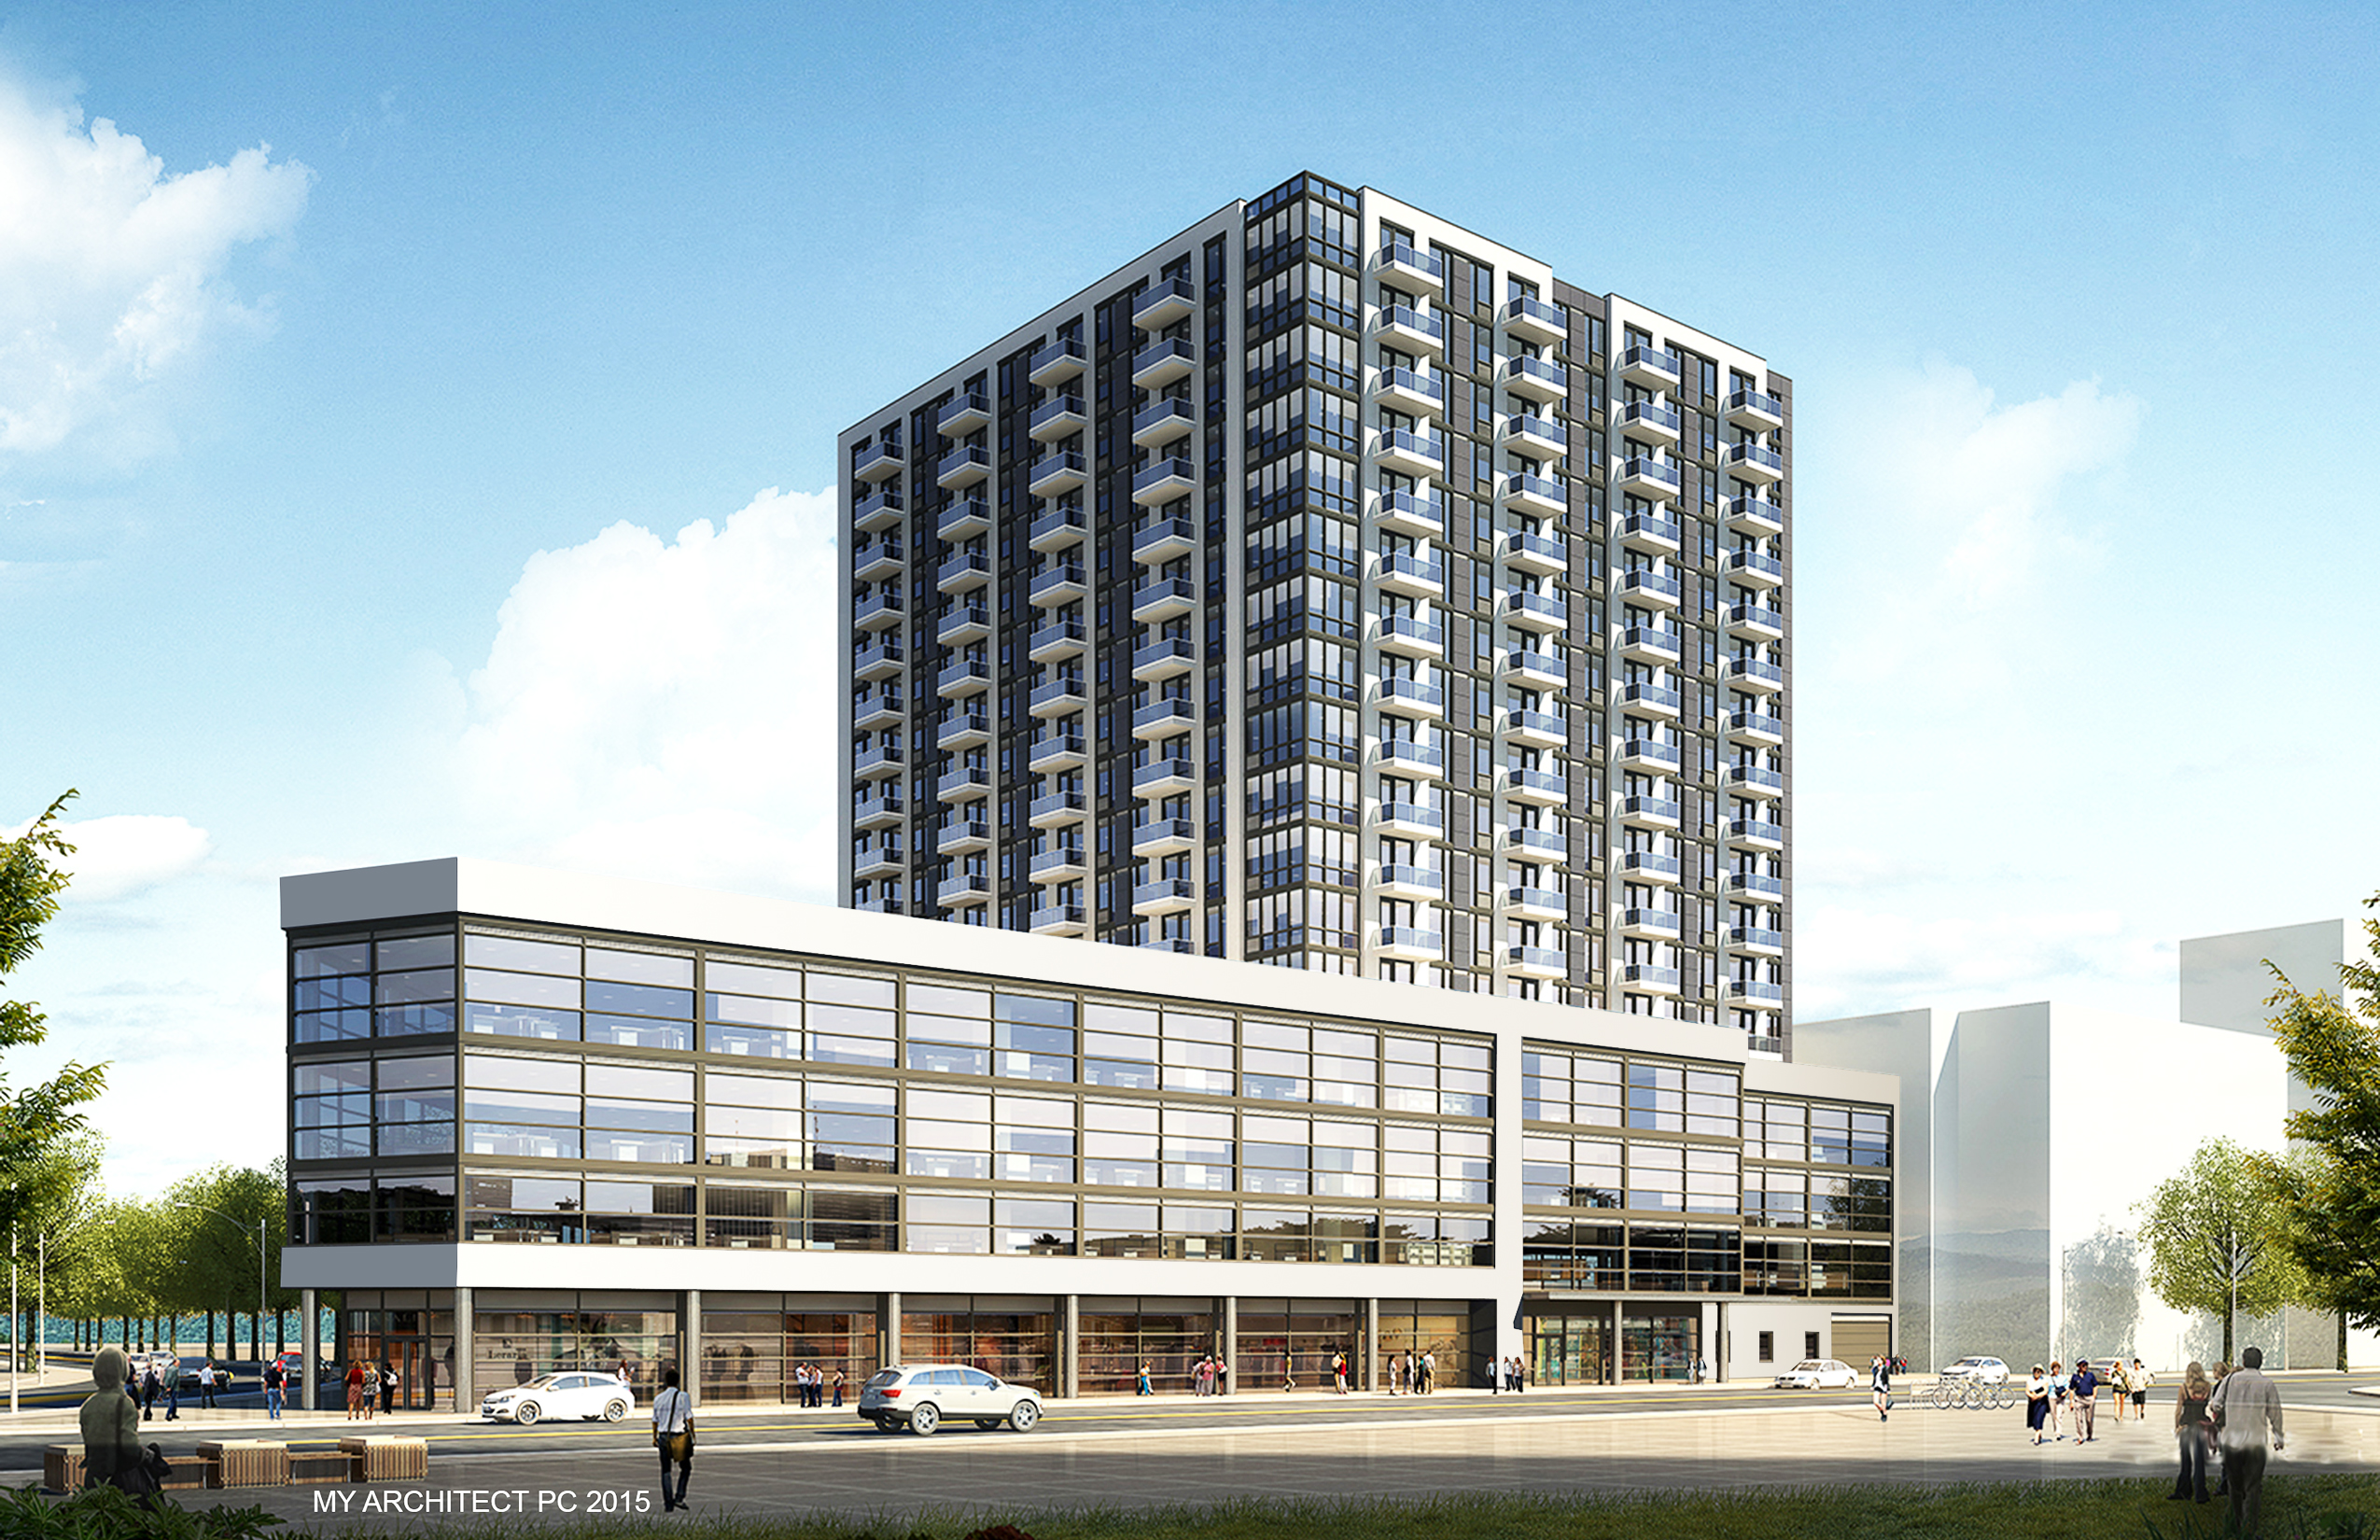 88-08 Justice Avenue, rendering by My Architect PC